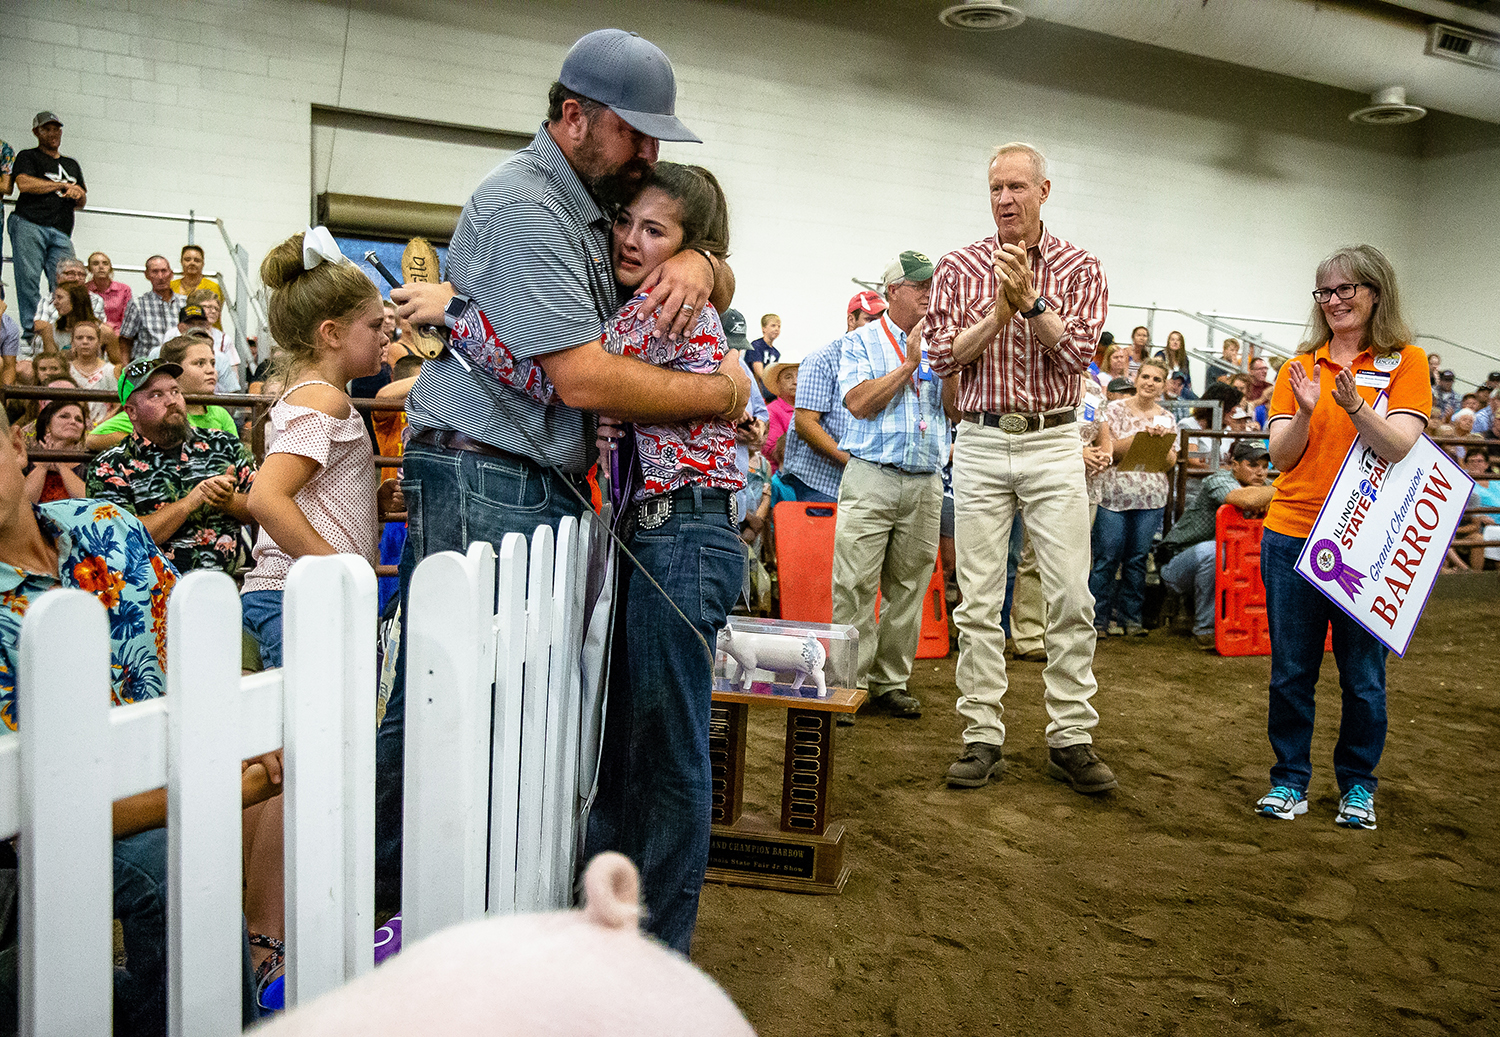 Ella Bobell, 12, hugs her father, Ben, after winning the Grand Champion Barrow during the Parade of Champions at the Livestock Center during the Illinois State Fair at the Illinois State Fairgrounds, Saturday, Aug. 11, 2018, in Springfield, Ill. [Justin L. Fowler/The State Journal-Register]